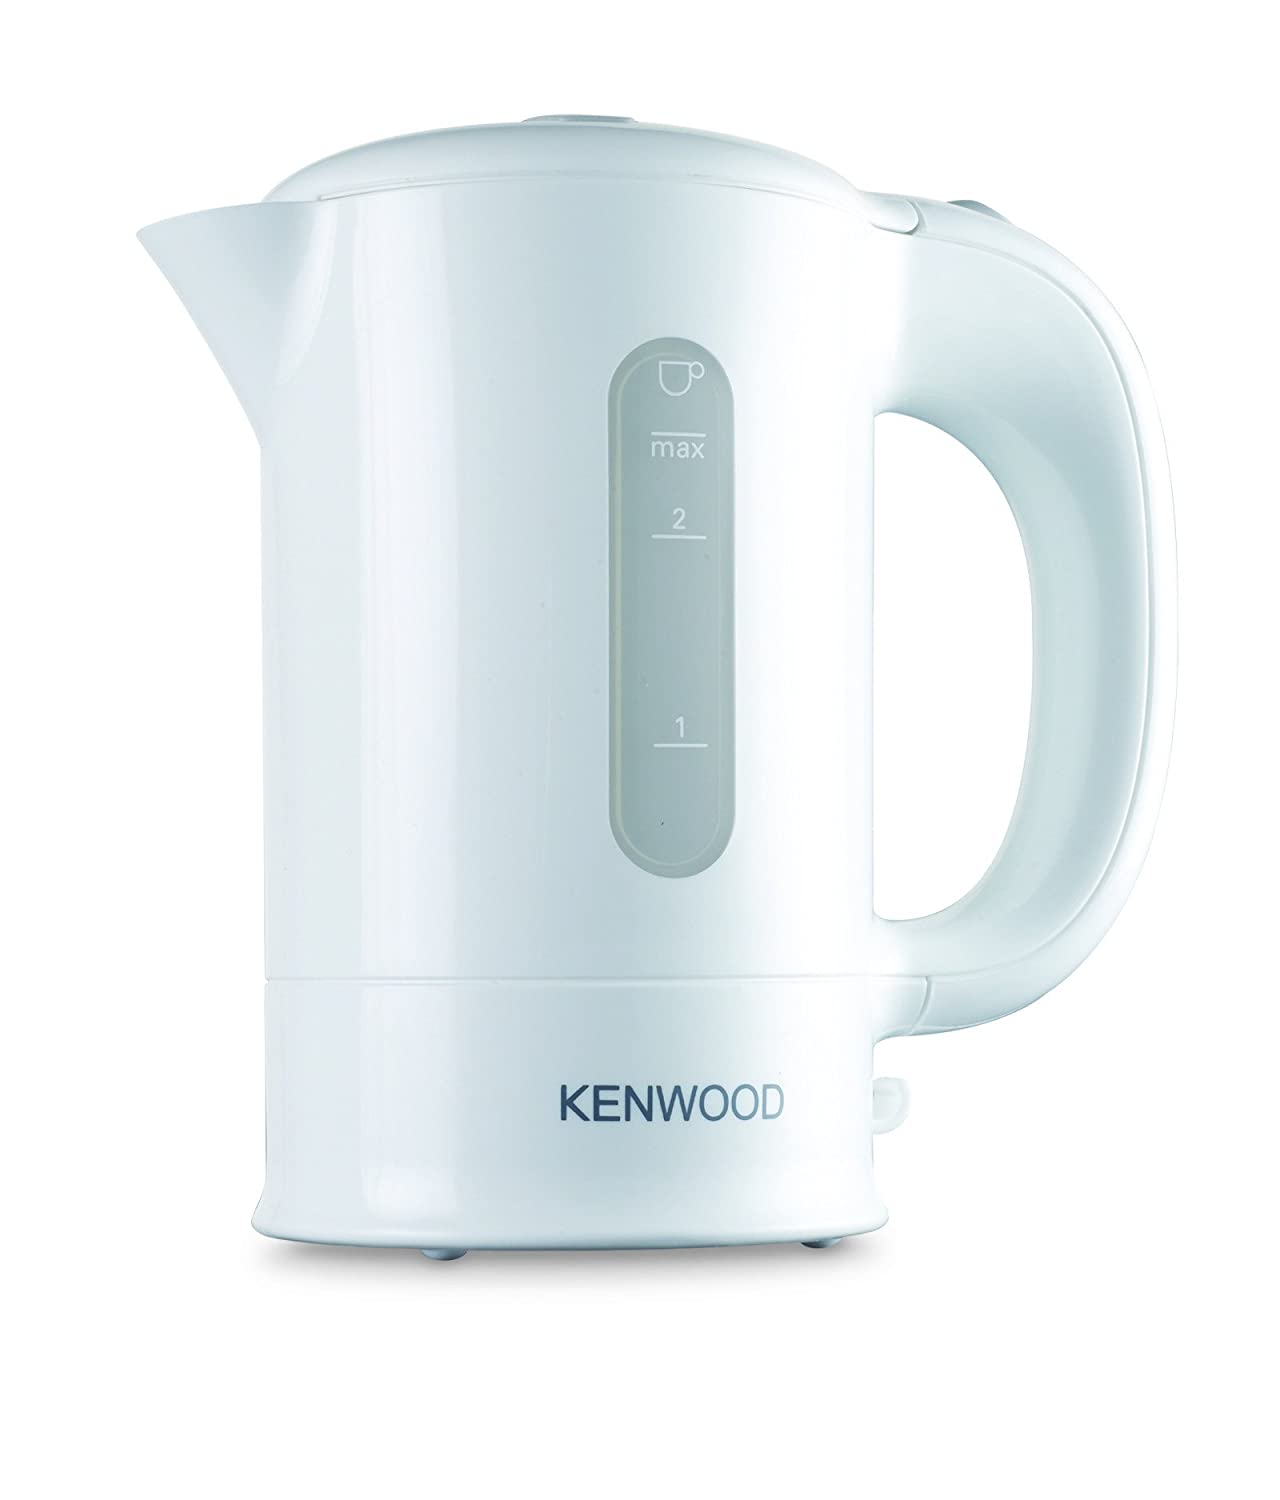 Kenwood Discovery JKP250 Kettle - White [Energy Class A] 0WJKP25001